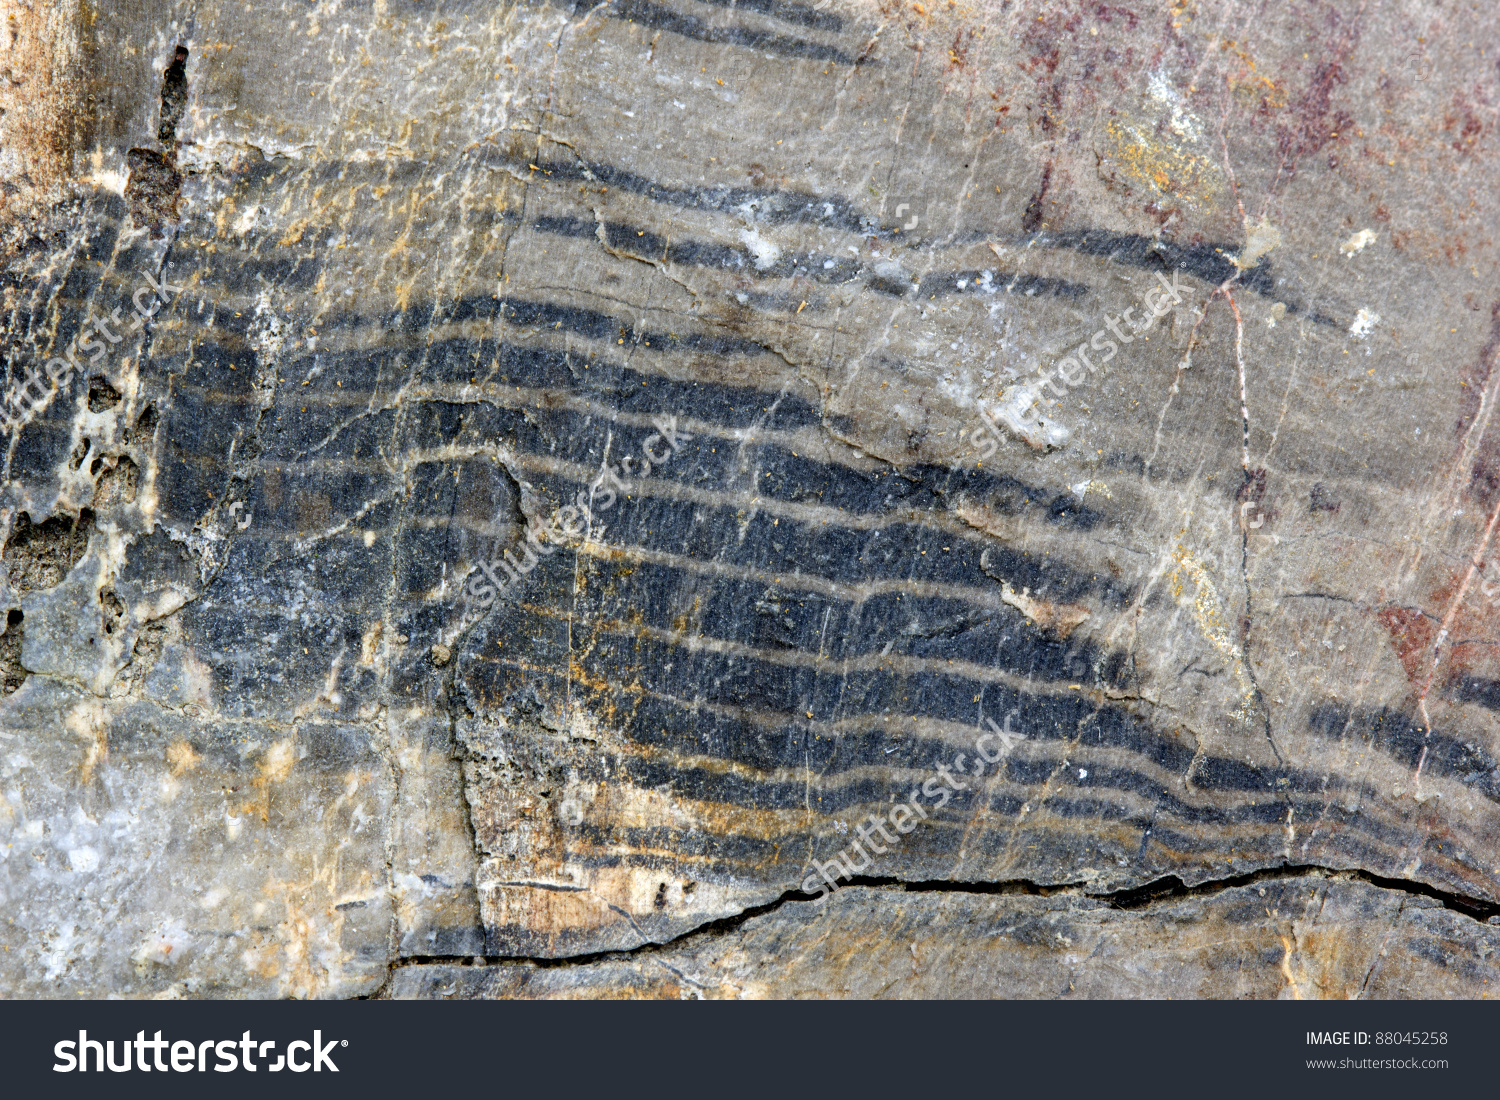 Fossil Growth Rings In A Petrified Tree Trunk (Genus.